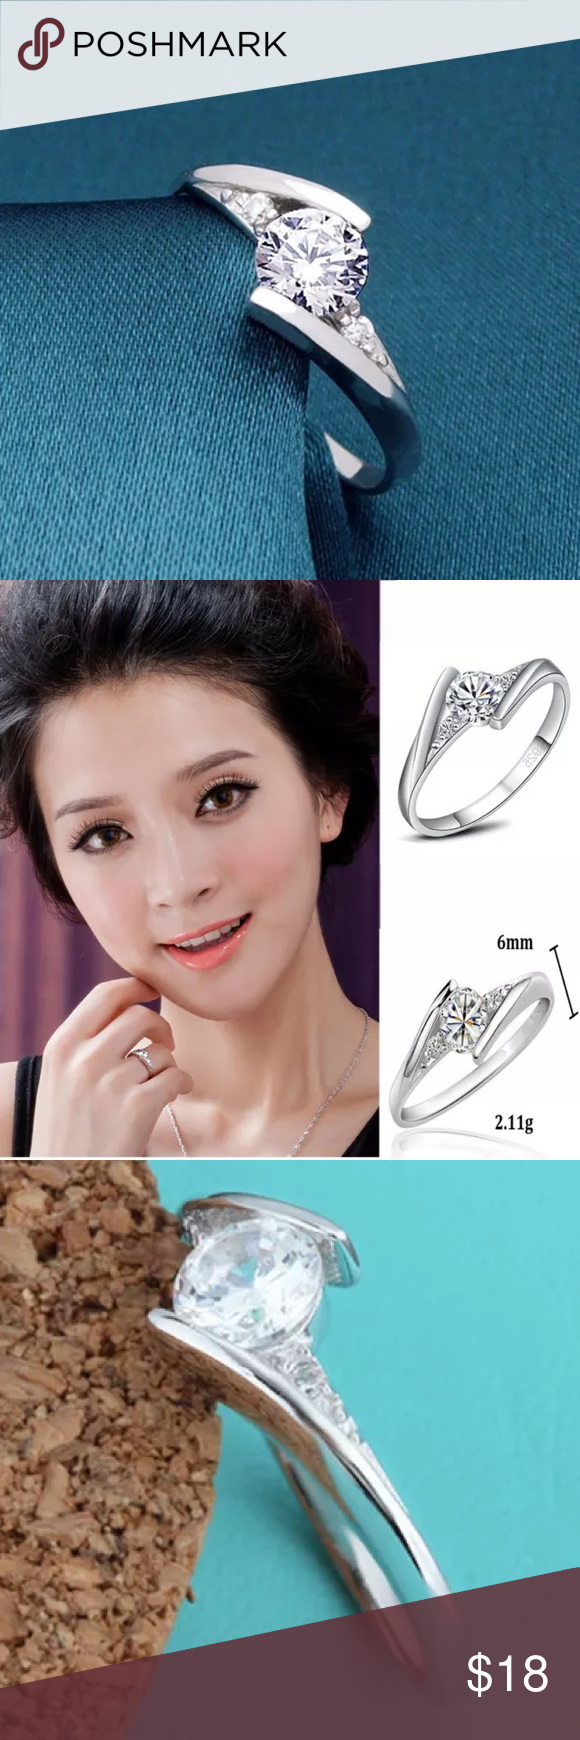 Zircon silver plated ring size 7 Nice elegant ring Jewelry Rings